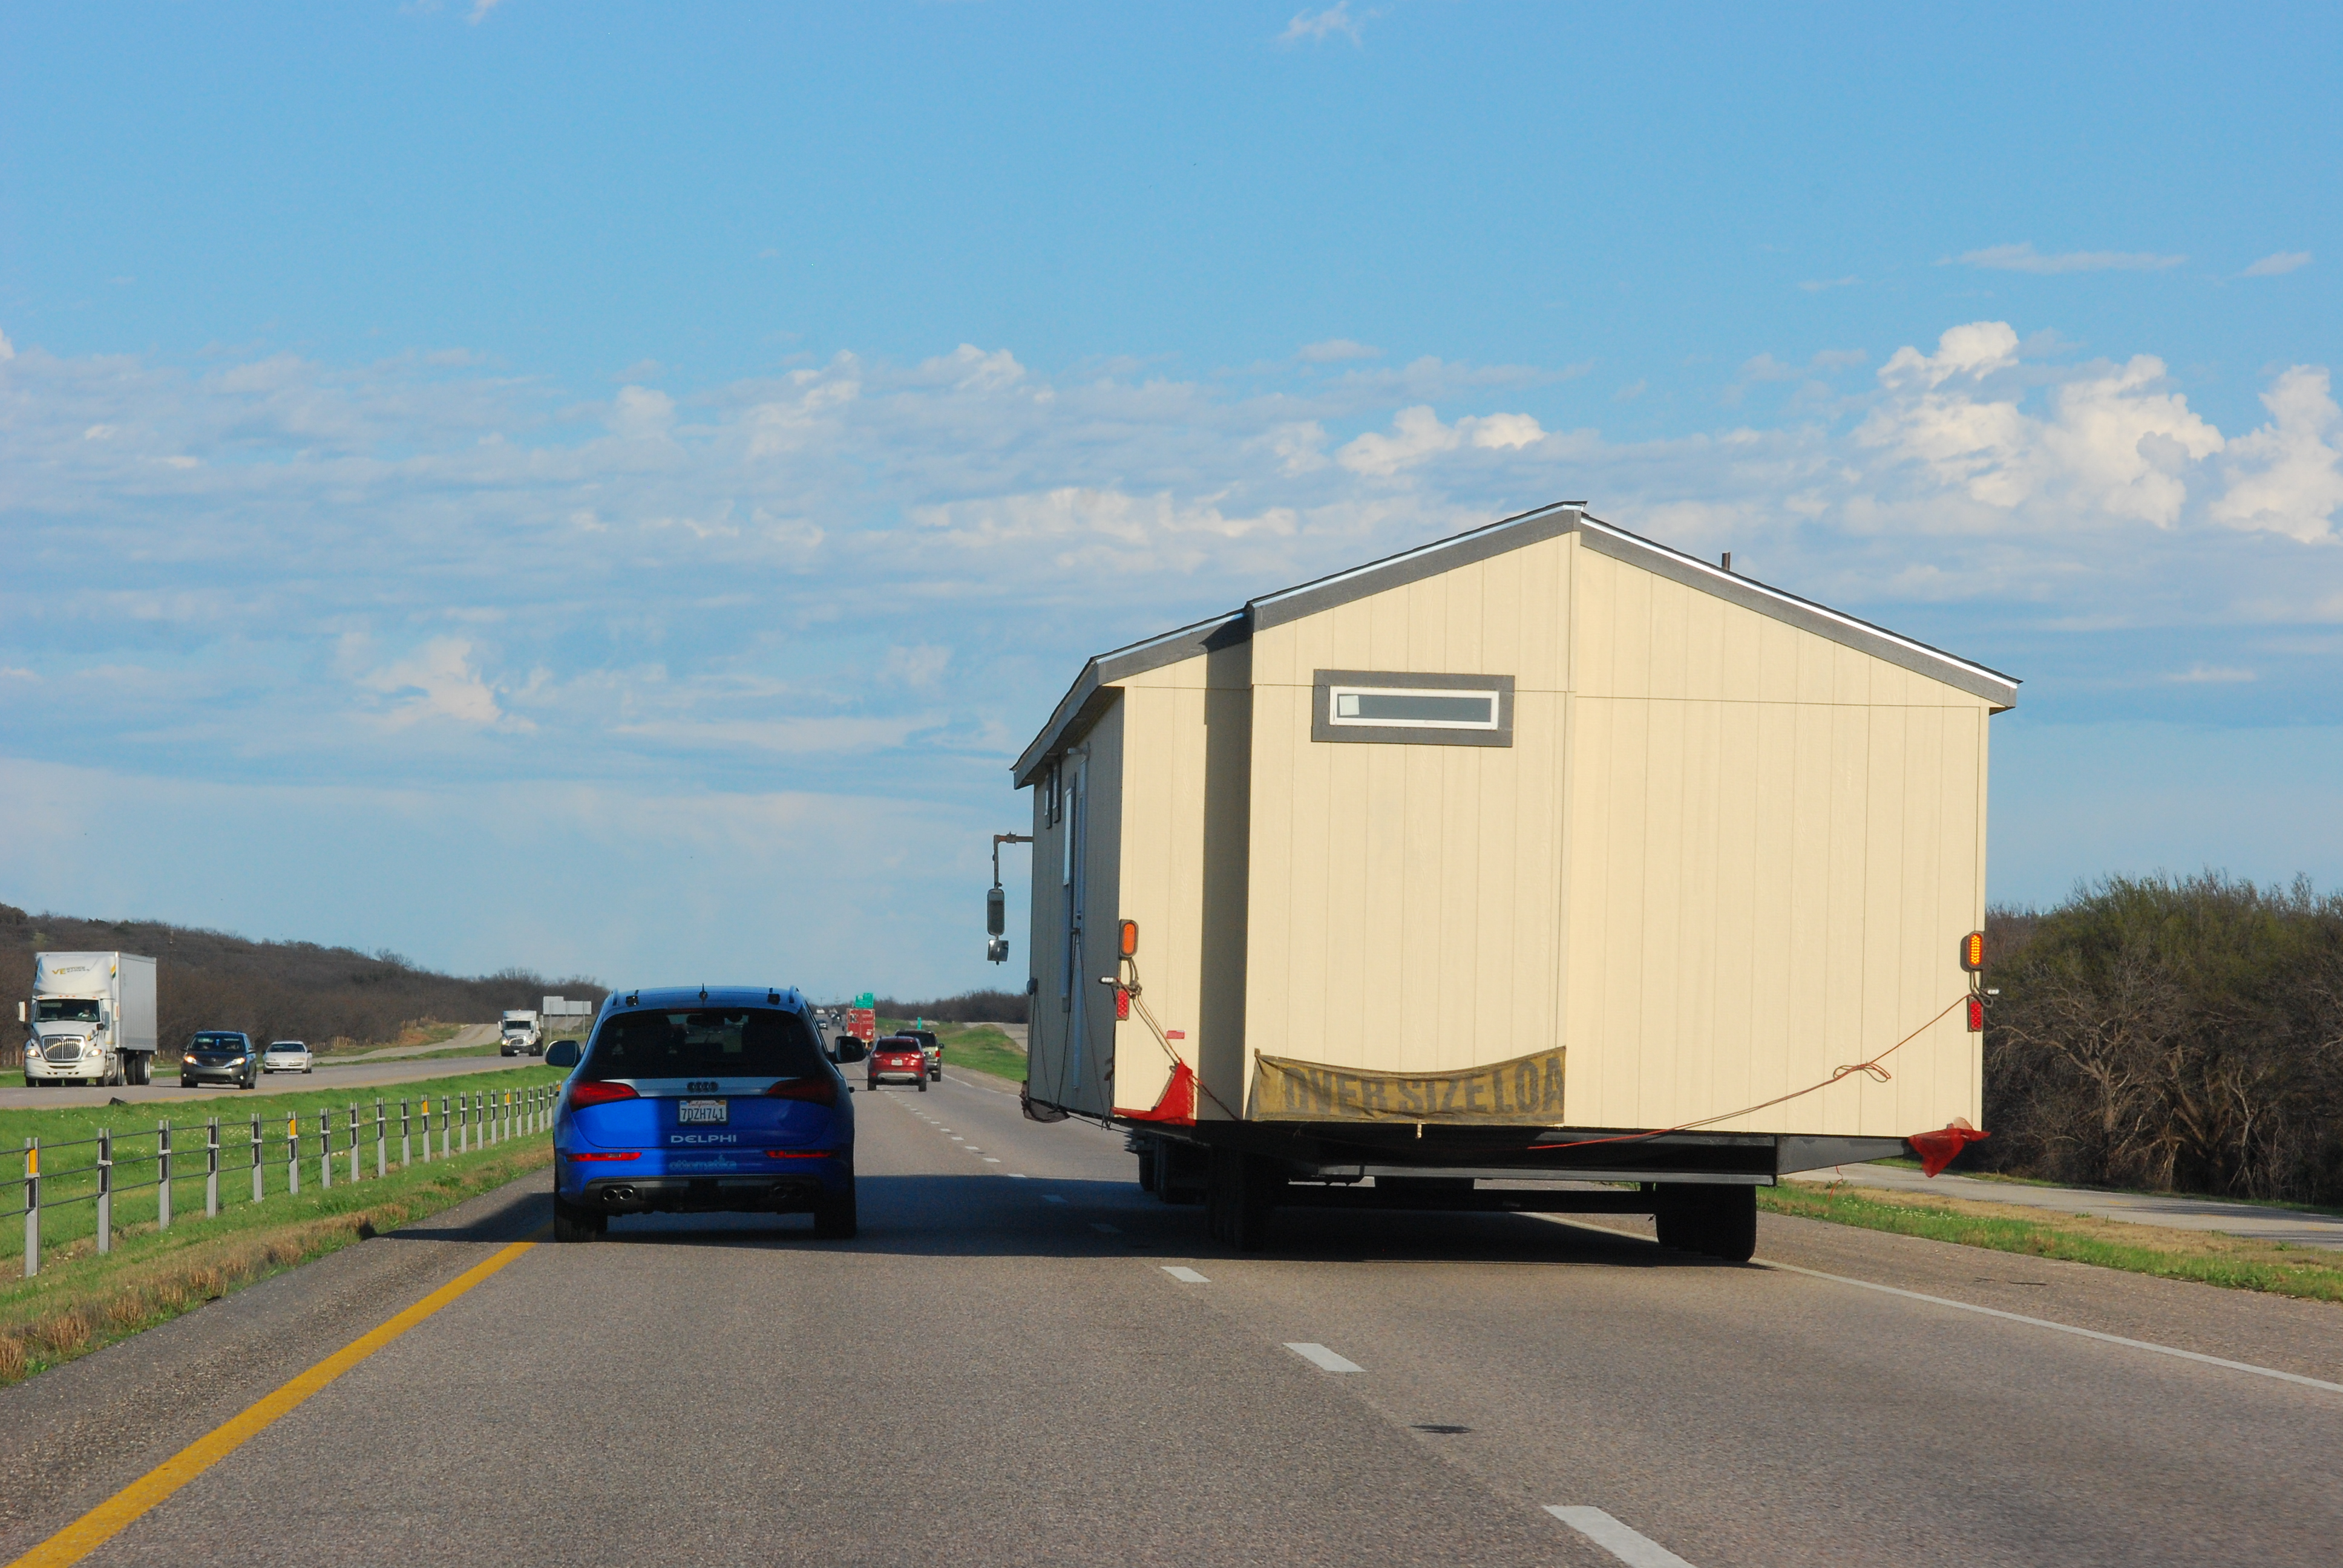 Delphi's autonomous car successfully navigates around a wide load on a freeway. Photo: BusinessWire.